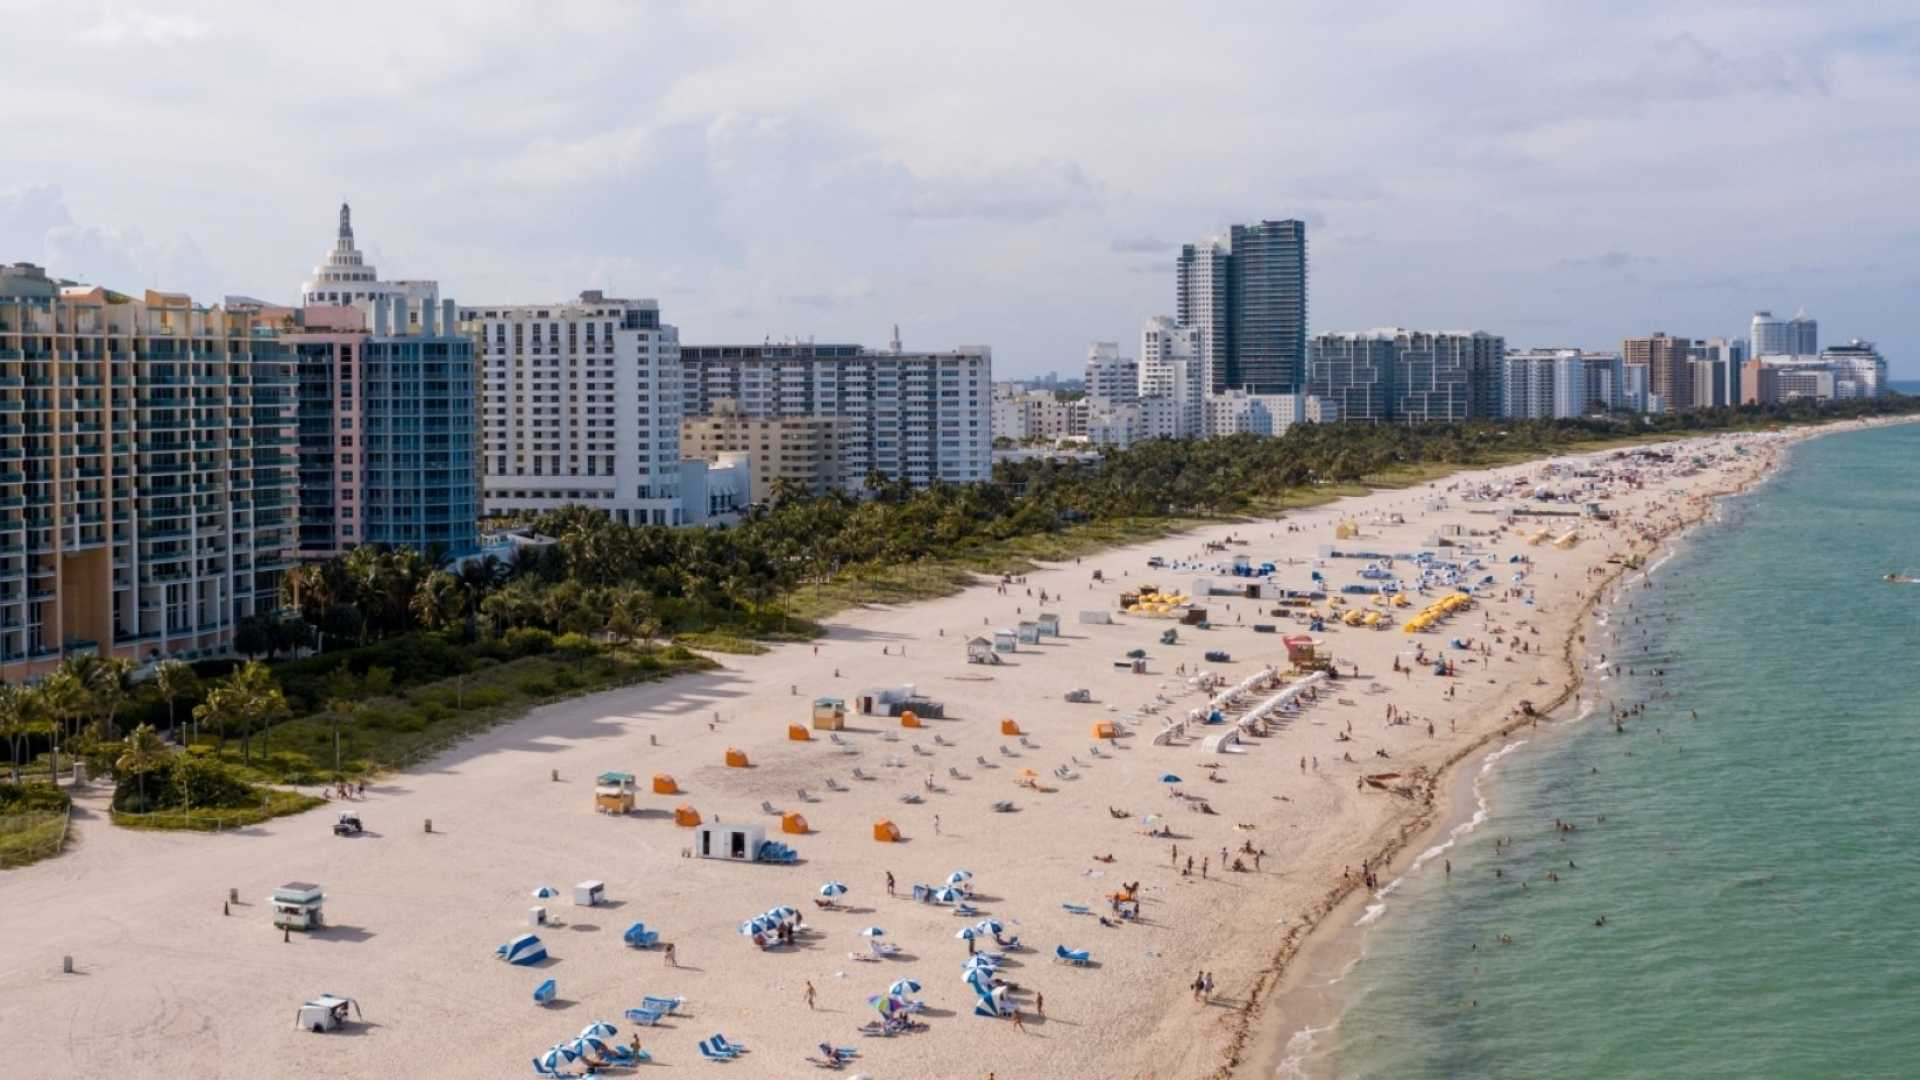 Entrepreneurs Are Flocking to Florida. Here's Everything You Need to Know About Its Startup Scene